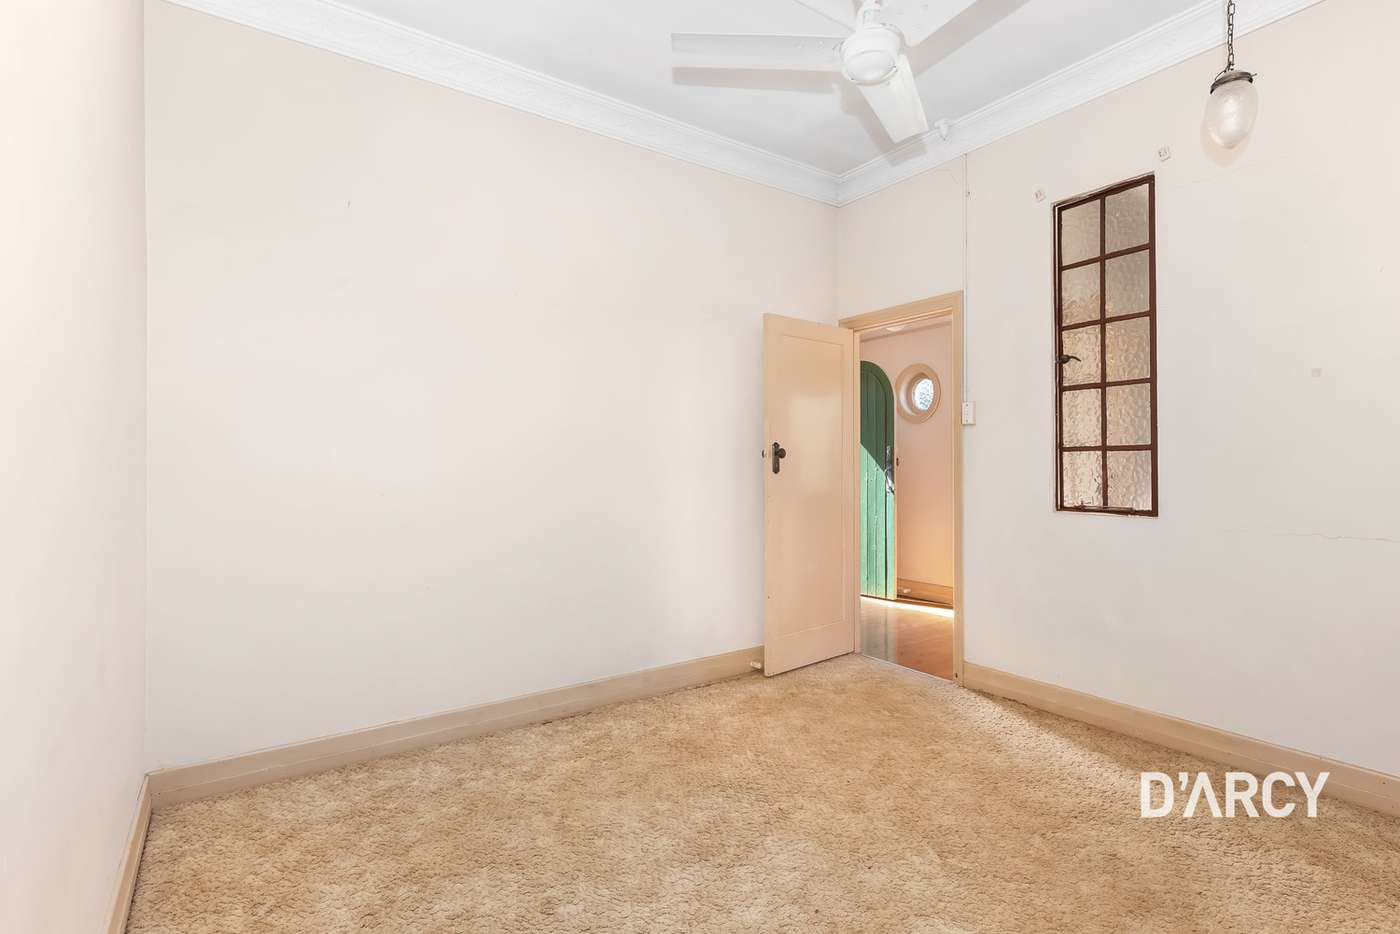 Sixth view of Homely house listing, 10 Gray Street, Newmarket QLD 4051